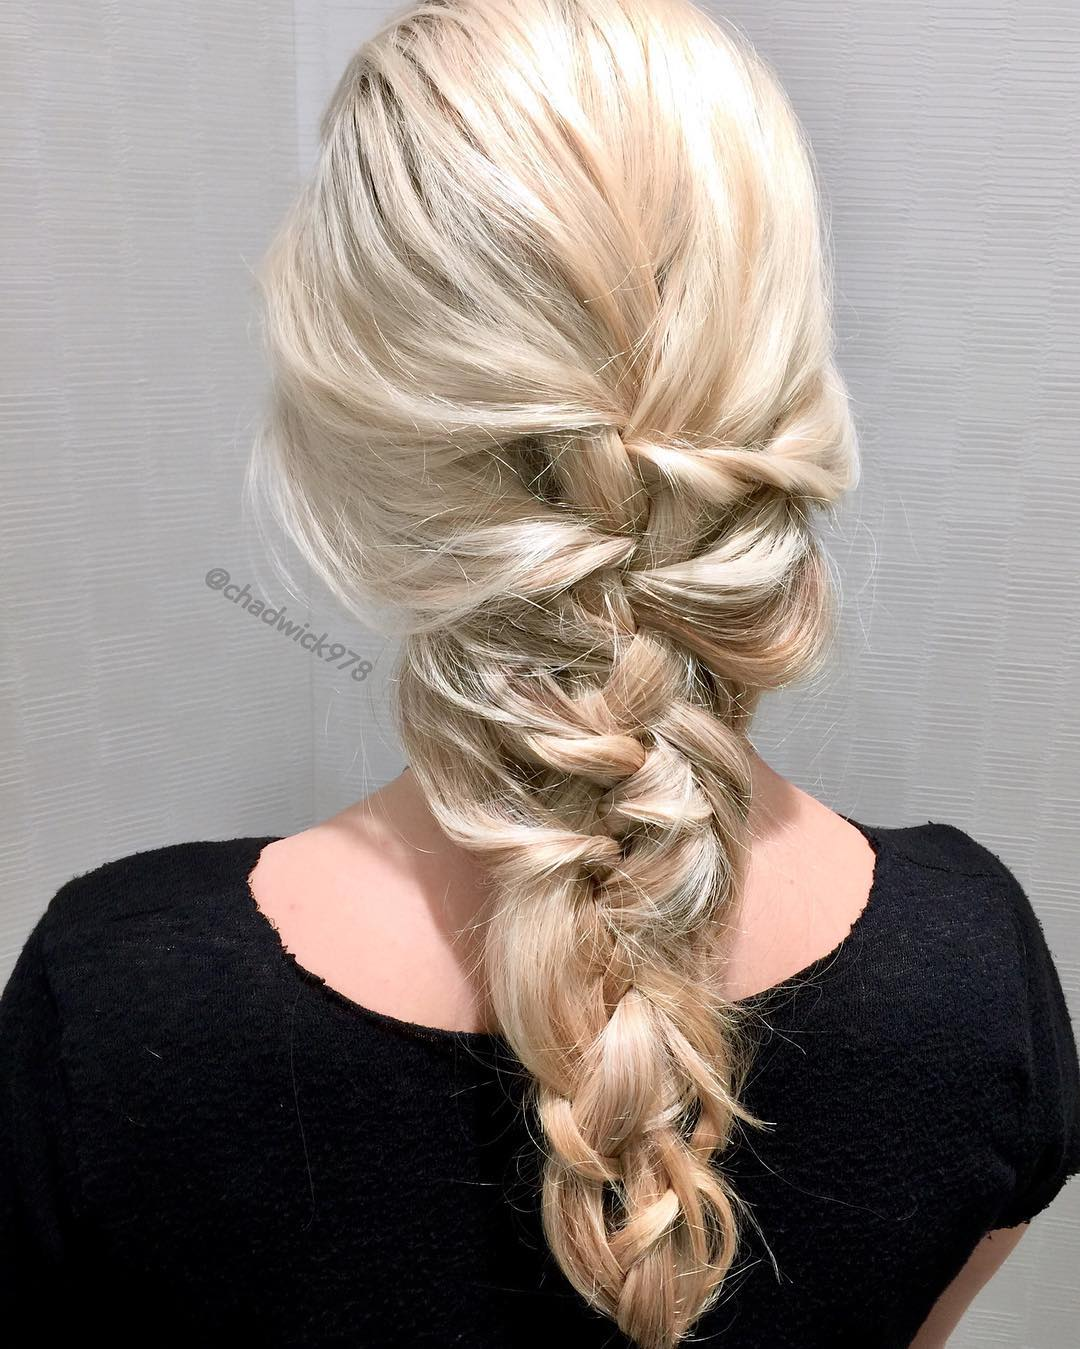 chadwick978-twisted-rope-braid-long-hair